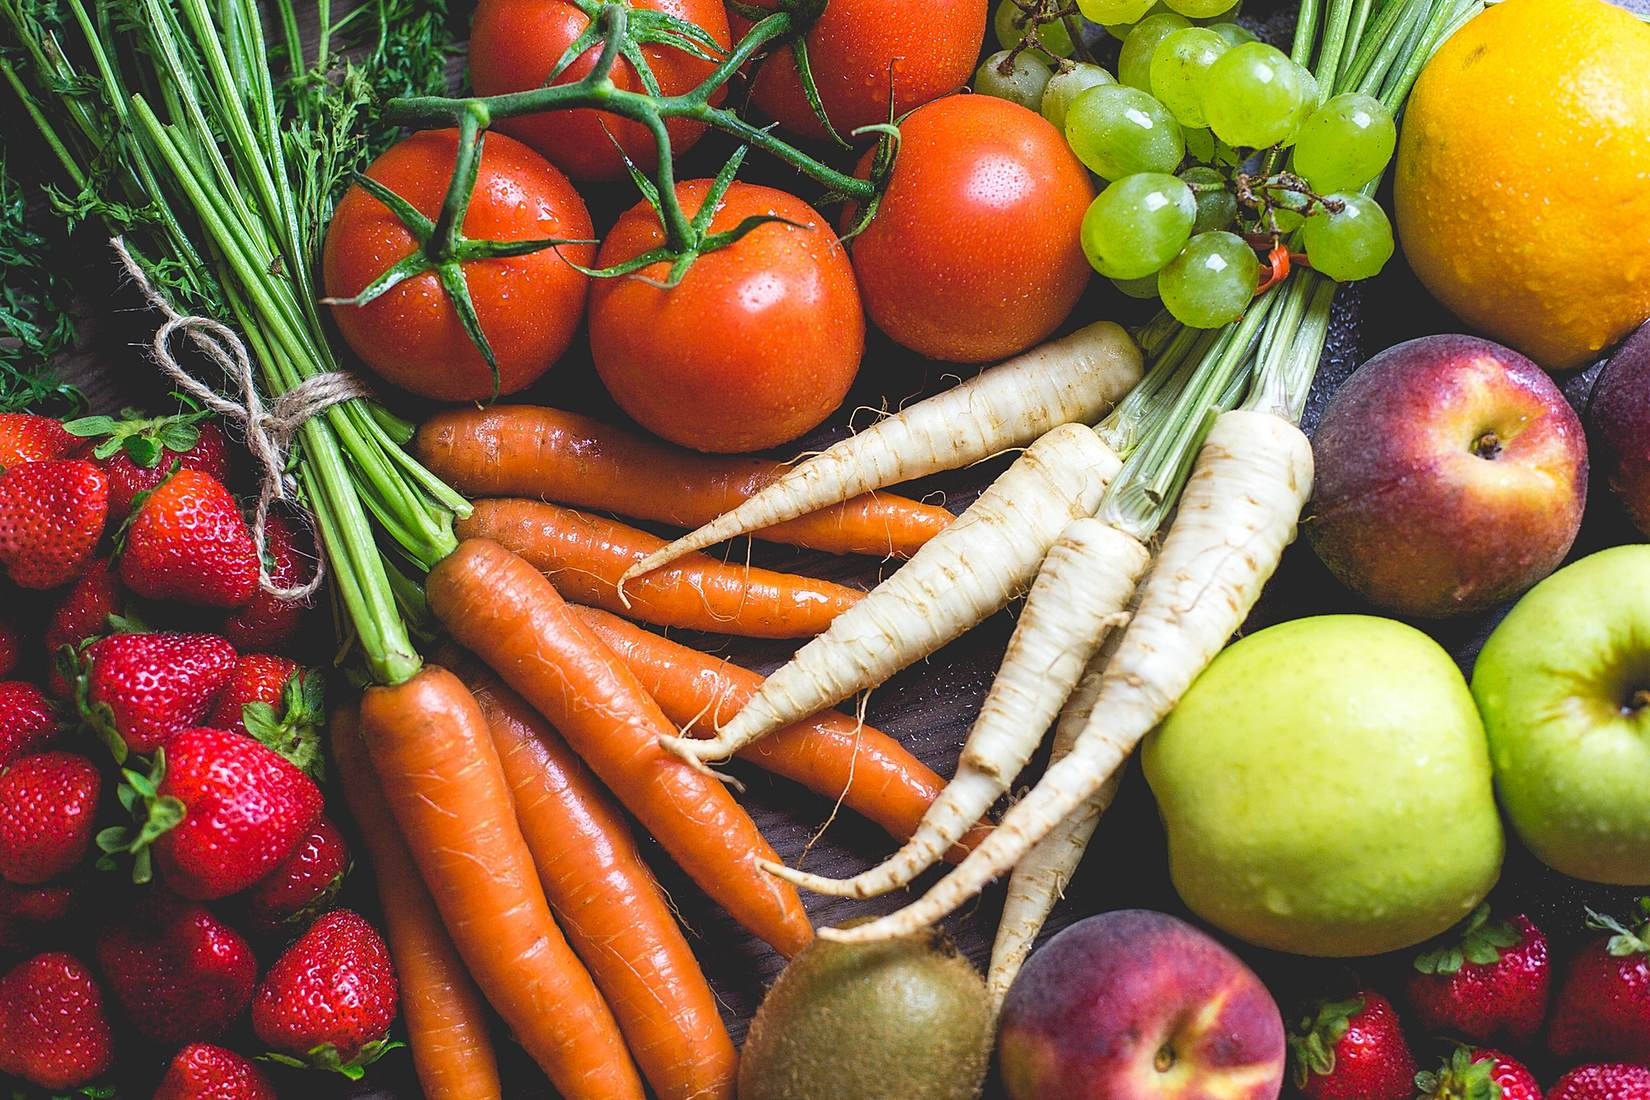 McBride Sisters tip:Support local! Shop at your local farmer's market if possible and if you have the option, choose providers who use sustainable farming practices.